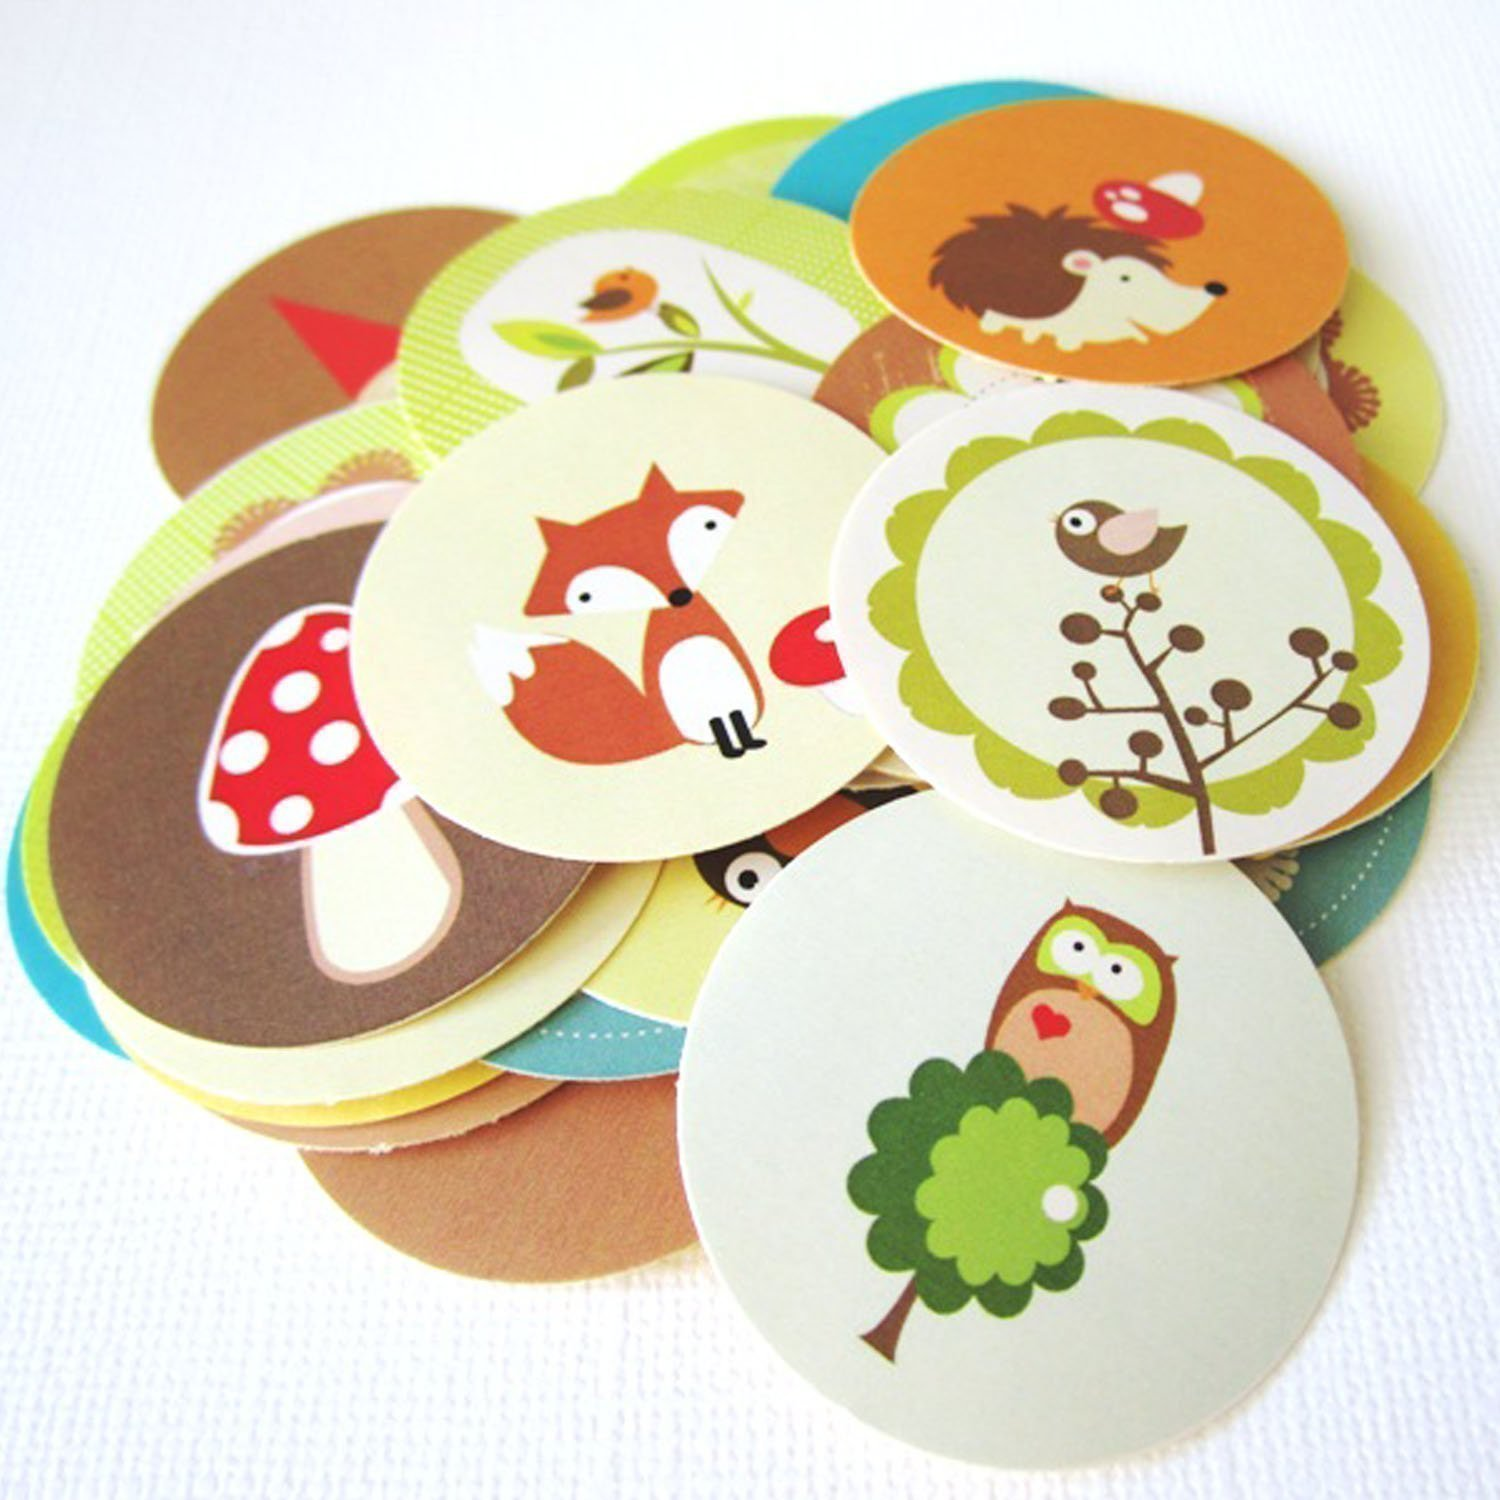 Woodland Animals and Gnome Stickers Label, Party Favors Gift Wrapping and Envelope Seal - Set of 50